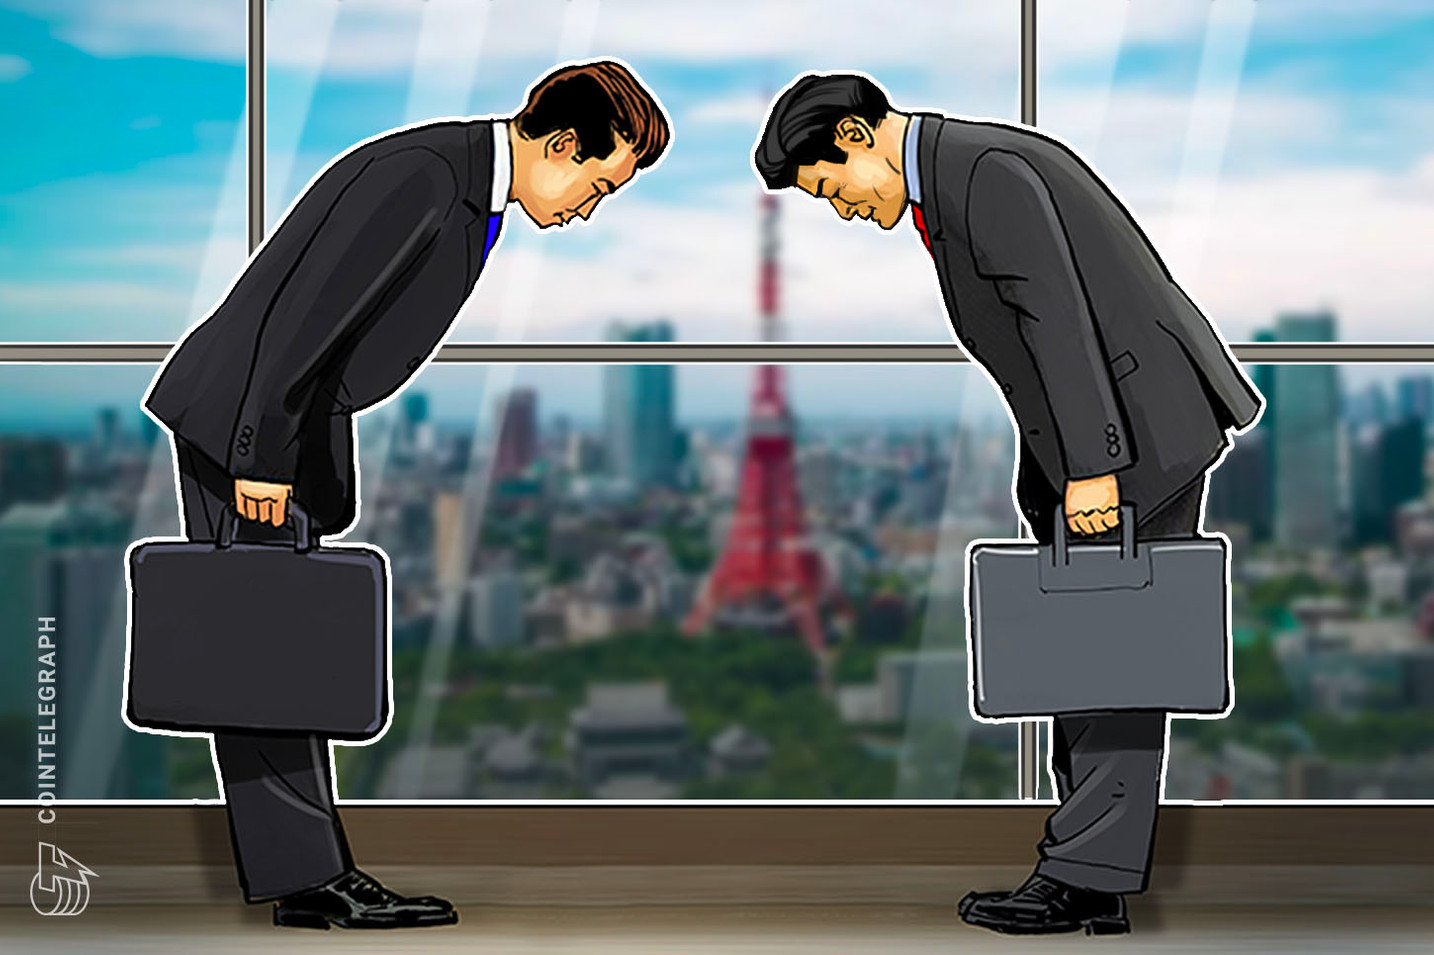 Huobi Buys Majority Stake in Japanese-licensed Crypto Exchange BitTrade